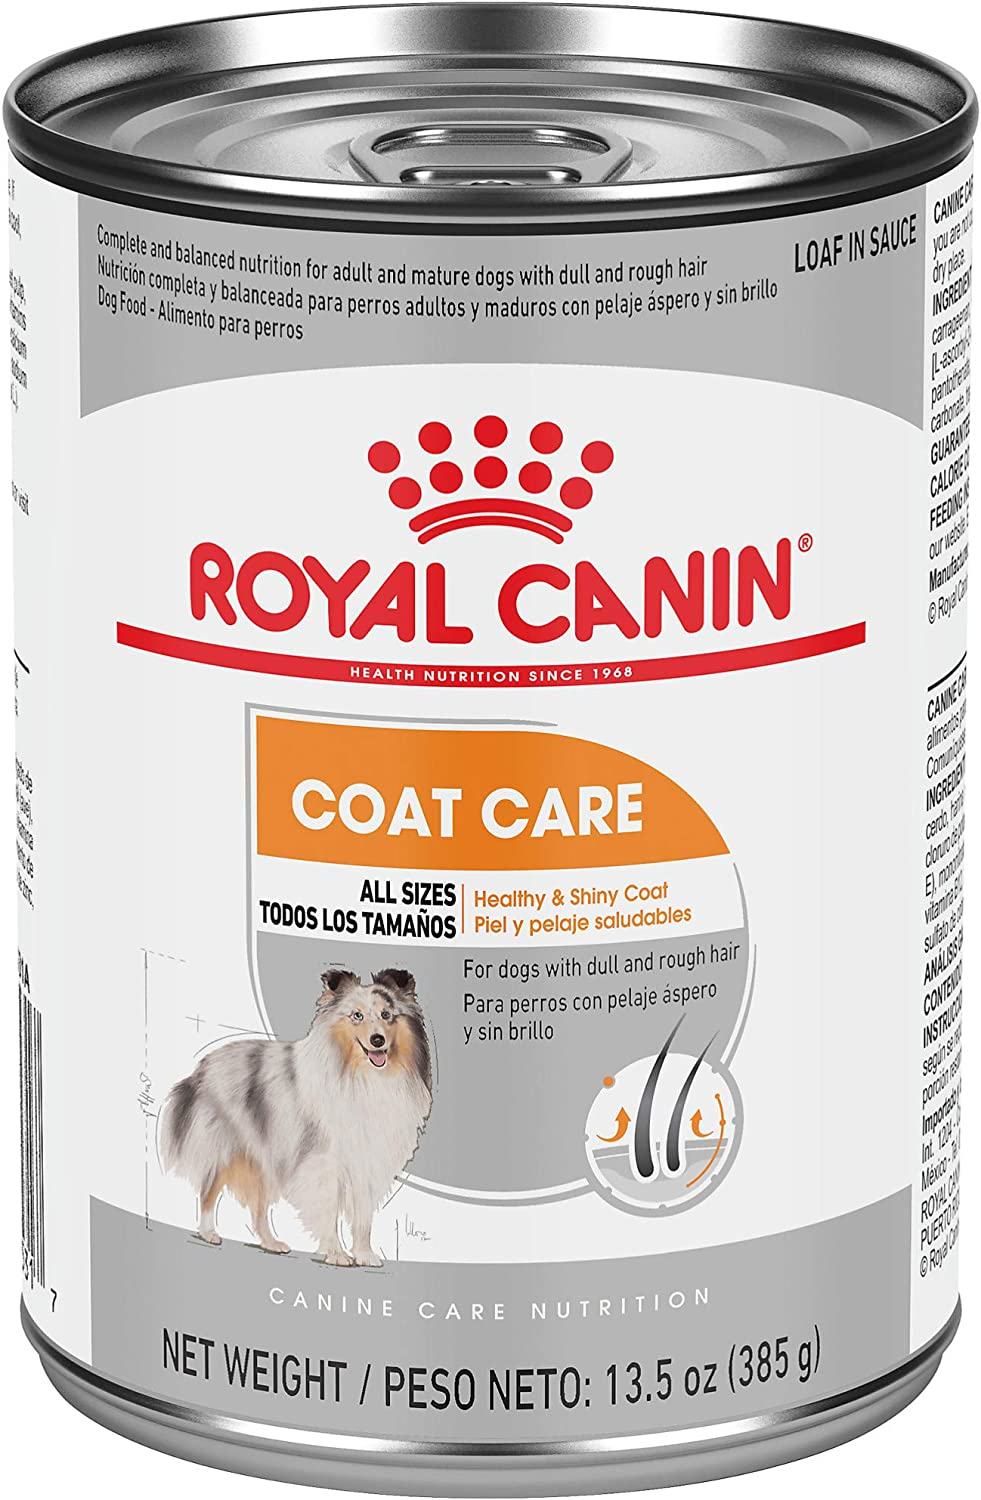 Royal Canin Canine Care Nutrition Coat Care Loaf in Gravy Dog Food